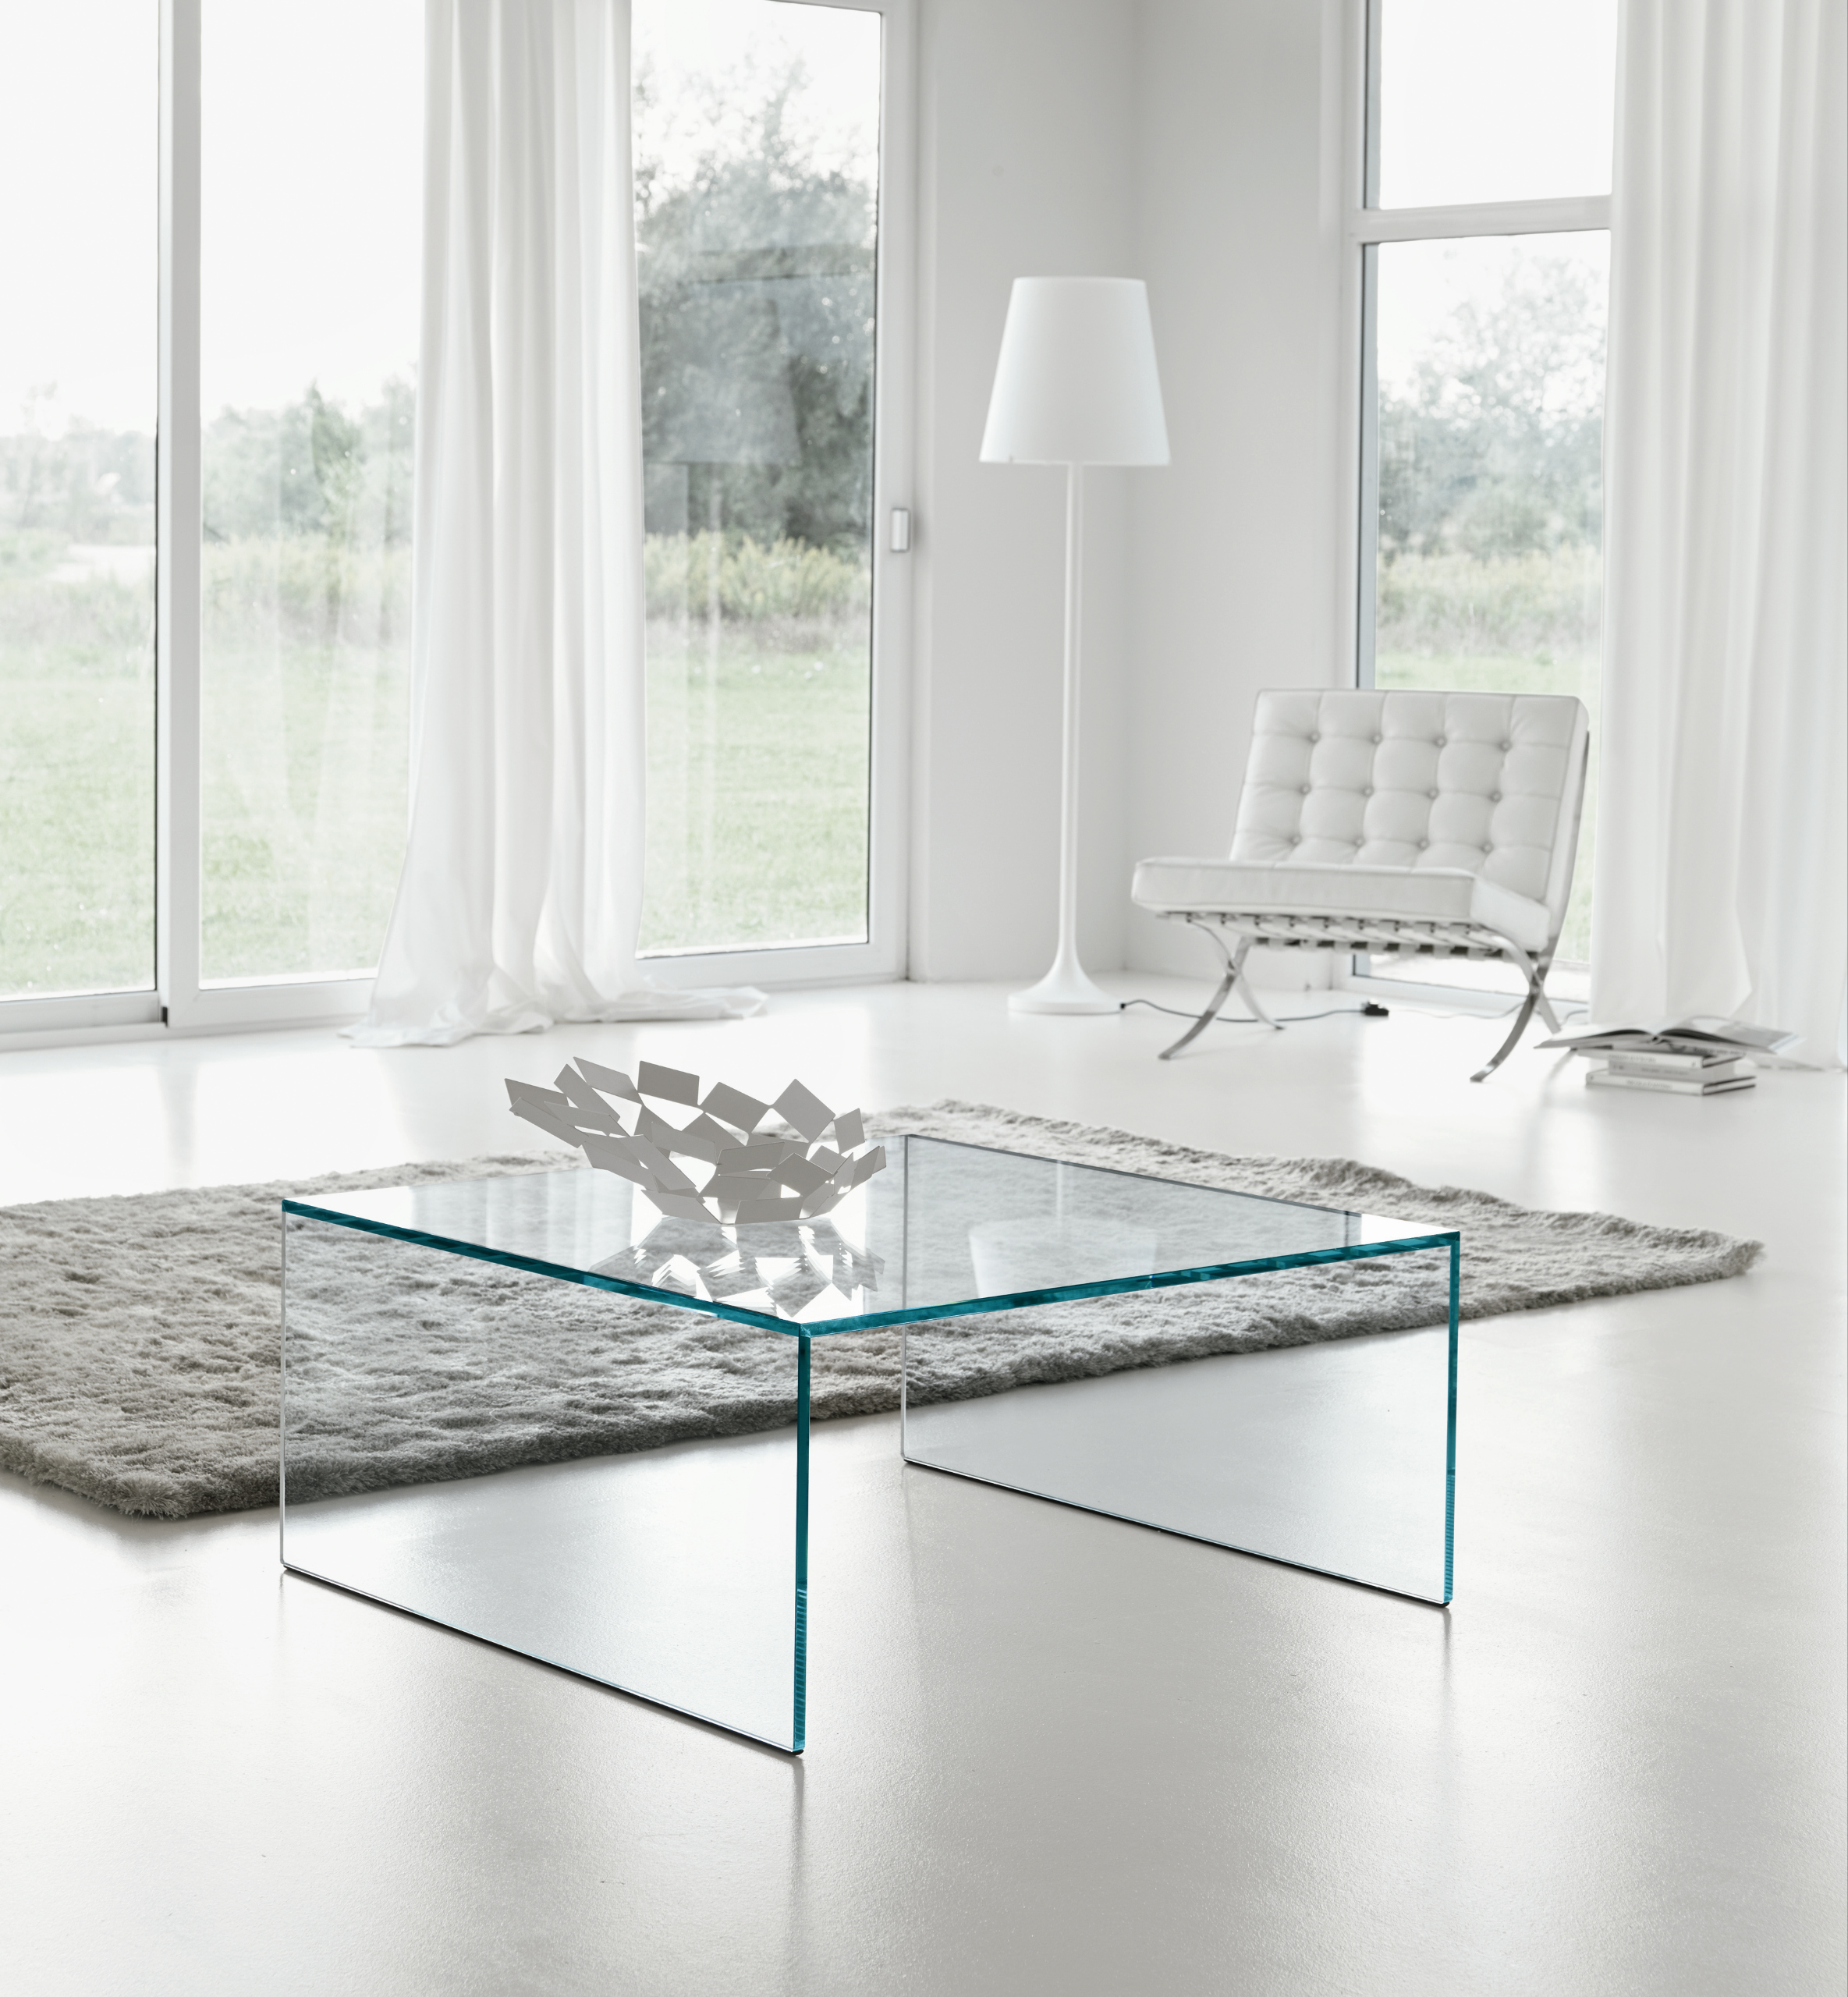 table basse en verre eden by t d tonelli design. Black Bedroom Furniture Sets. Home Design Ideas